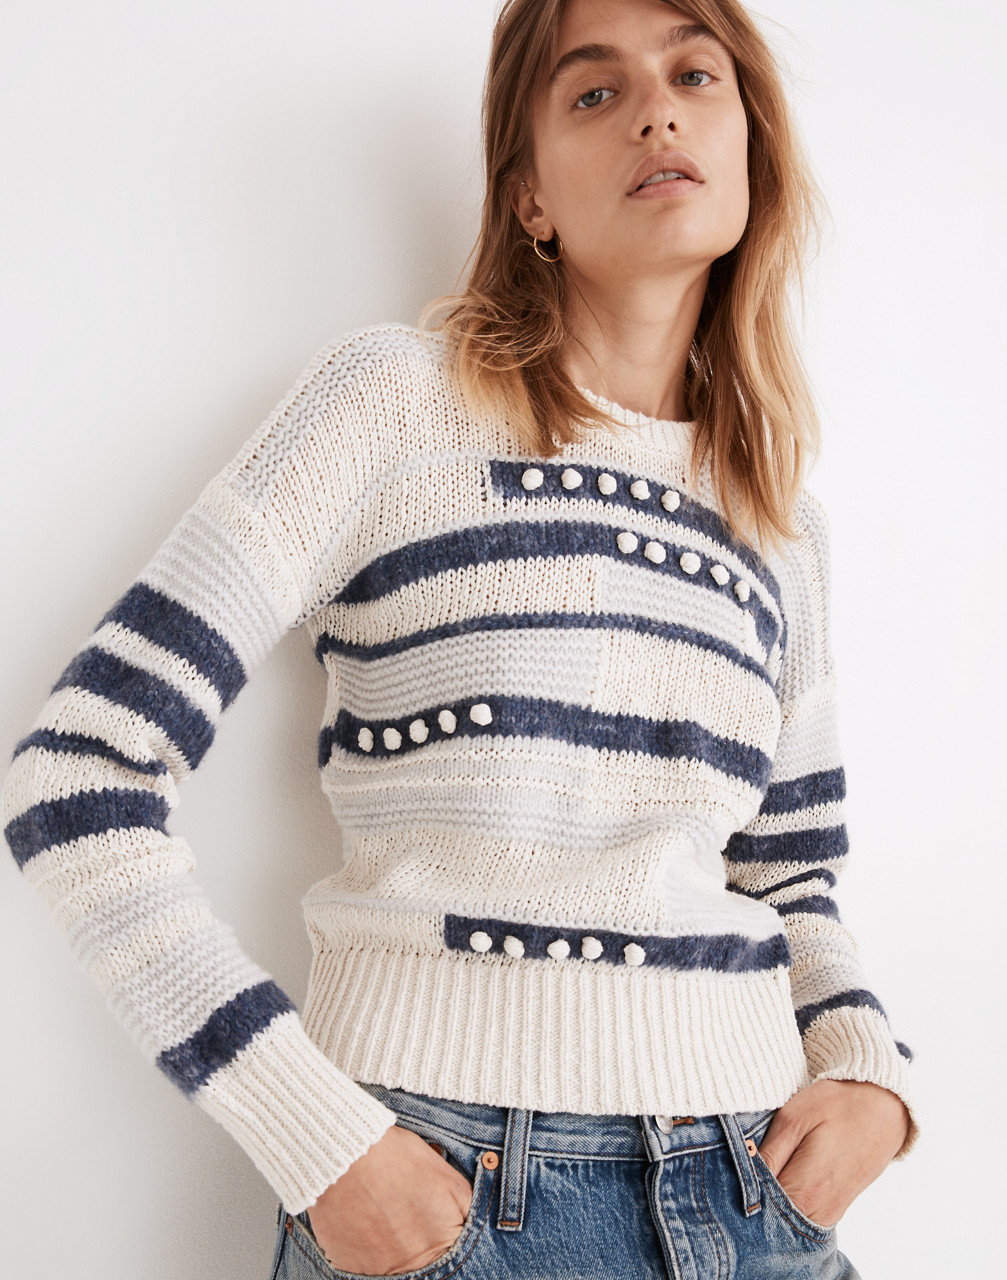 80s Fashion— What Women Wore in the 1980s Grandover Bobble Pullover Sweater $98.00 AT vintagedancer.com